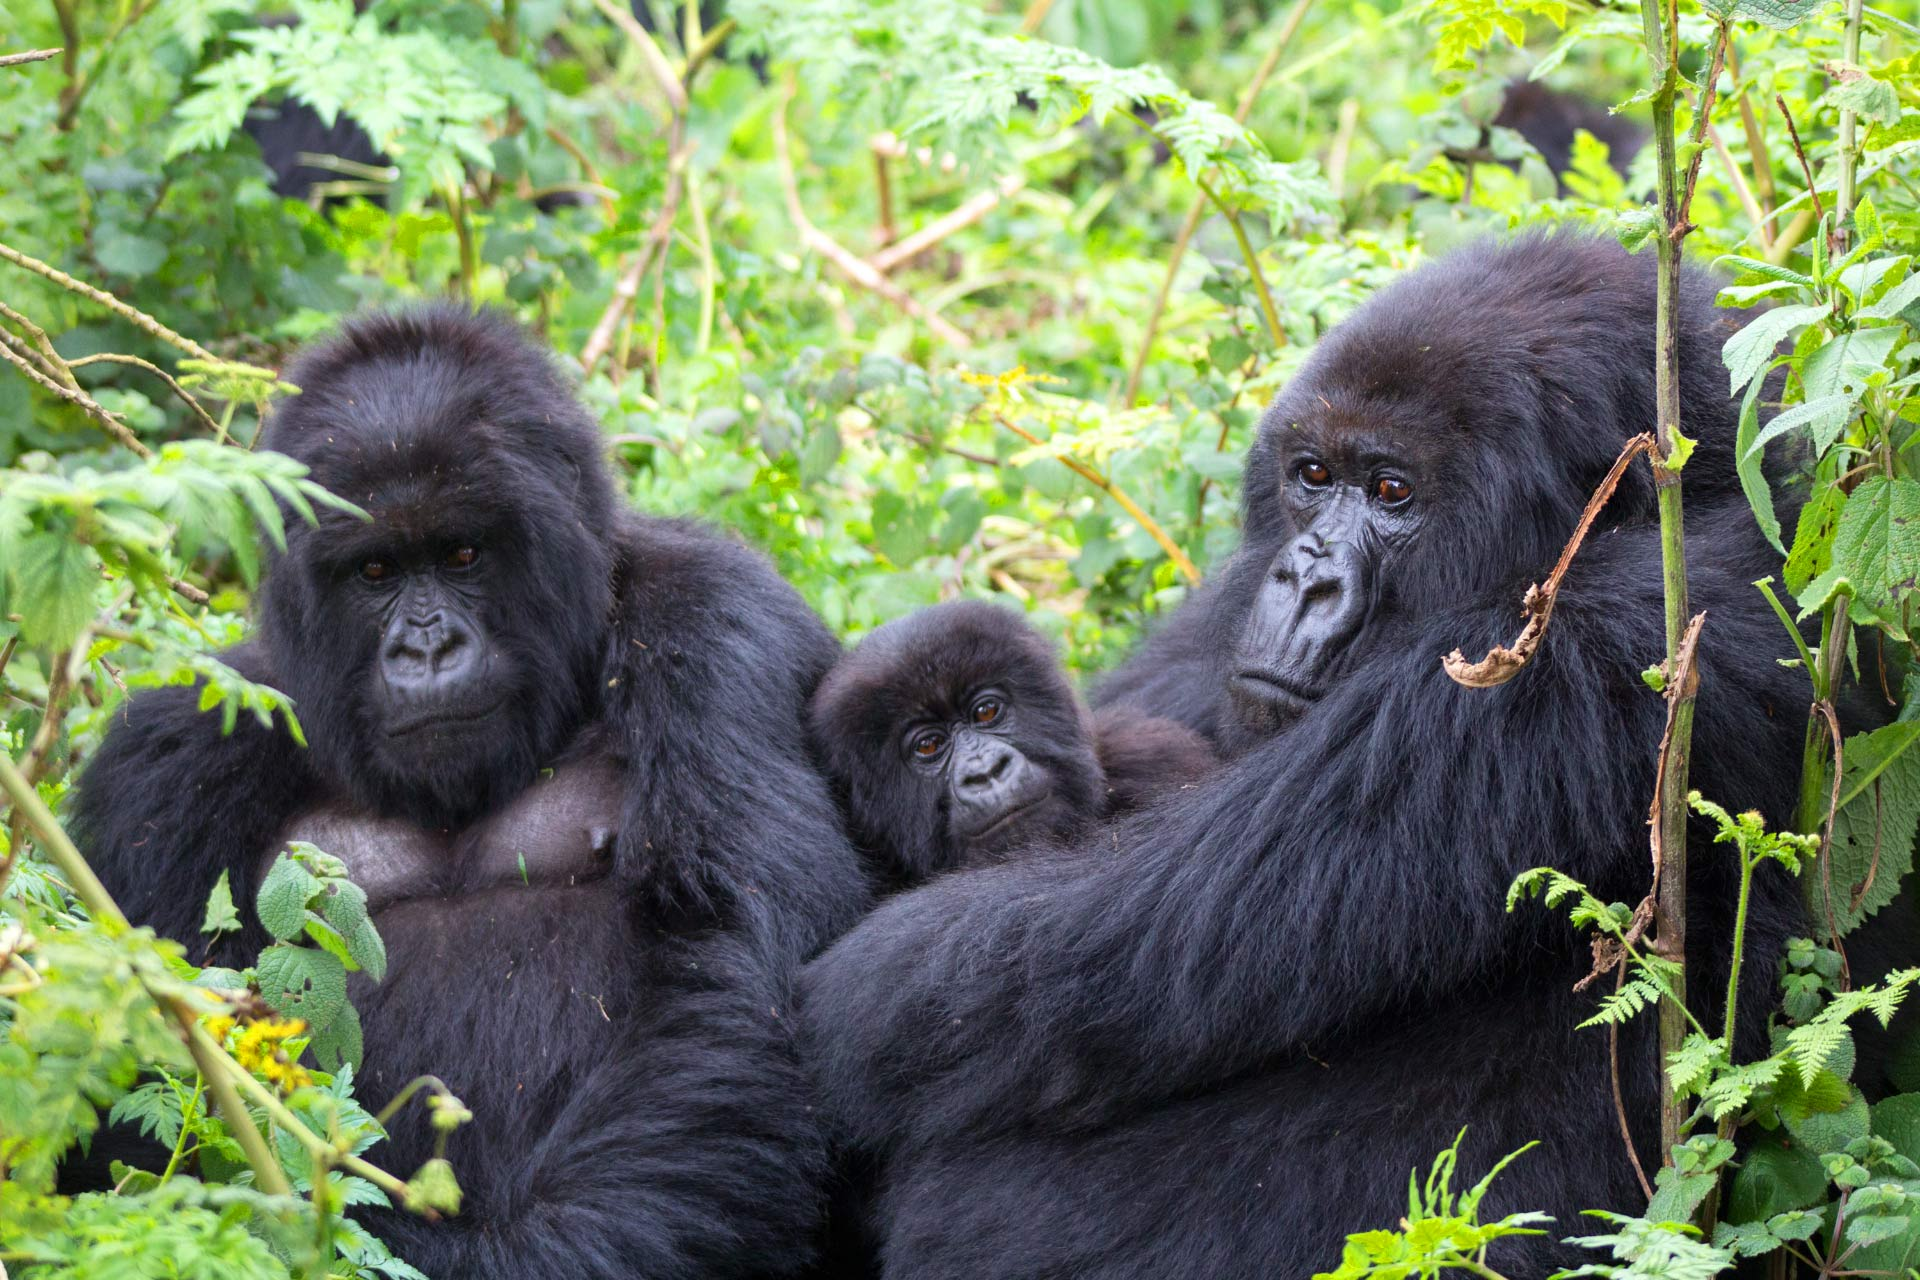 Rushaga the best section for gorilla safaris in Bwindi